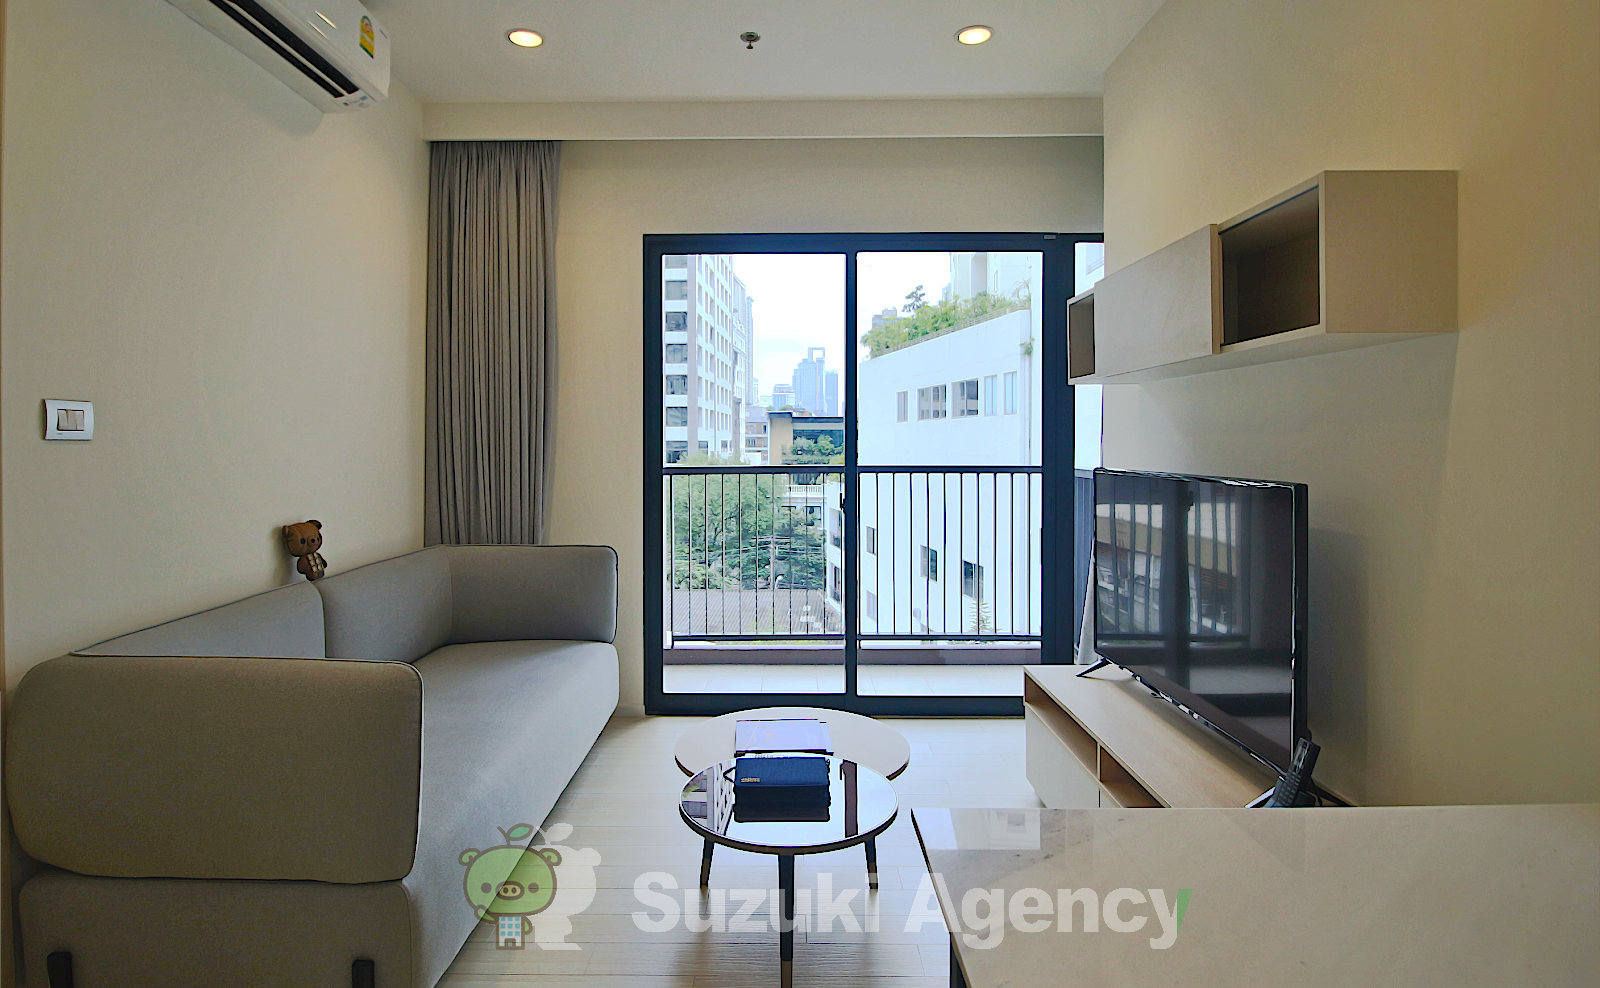 Sindhorn Midtown:1Bed Room Photos No.1